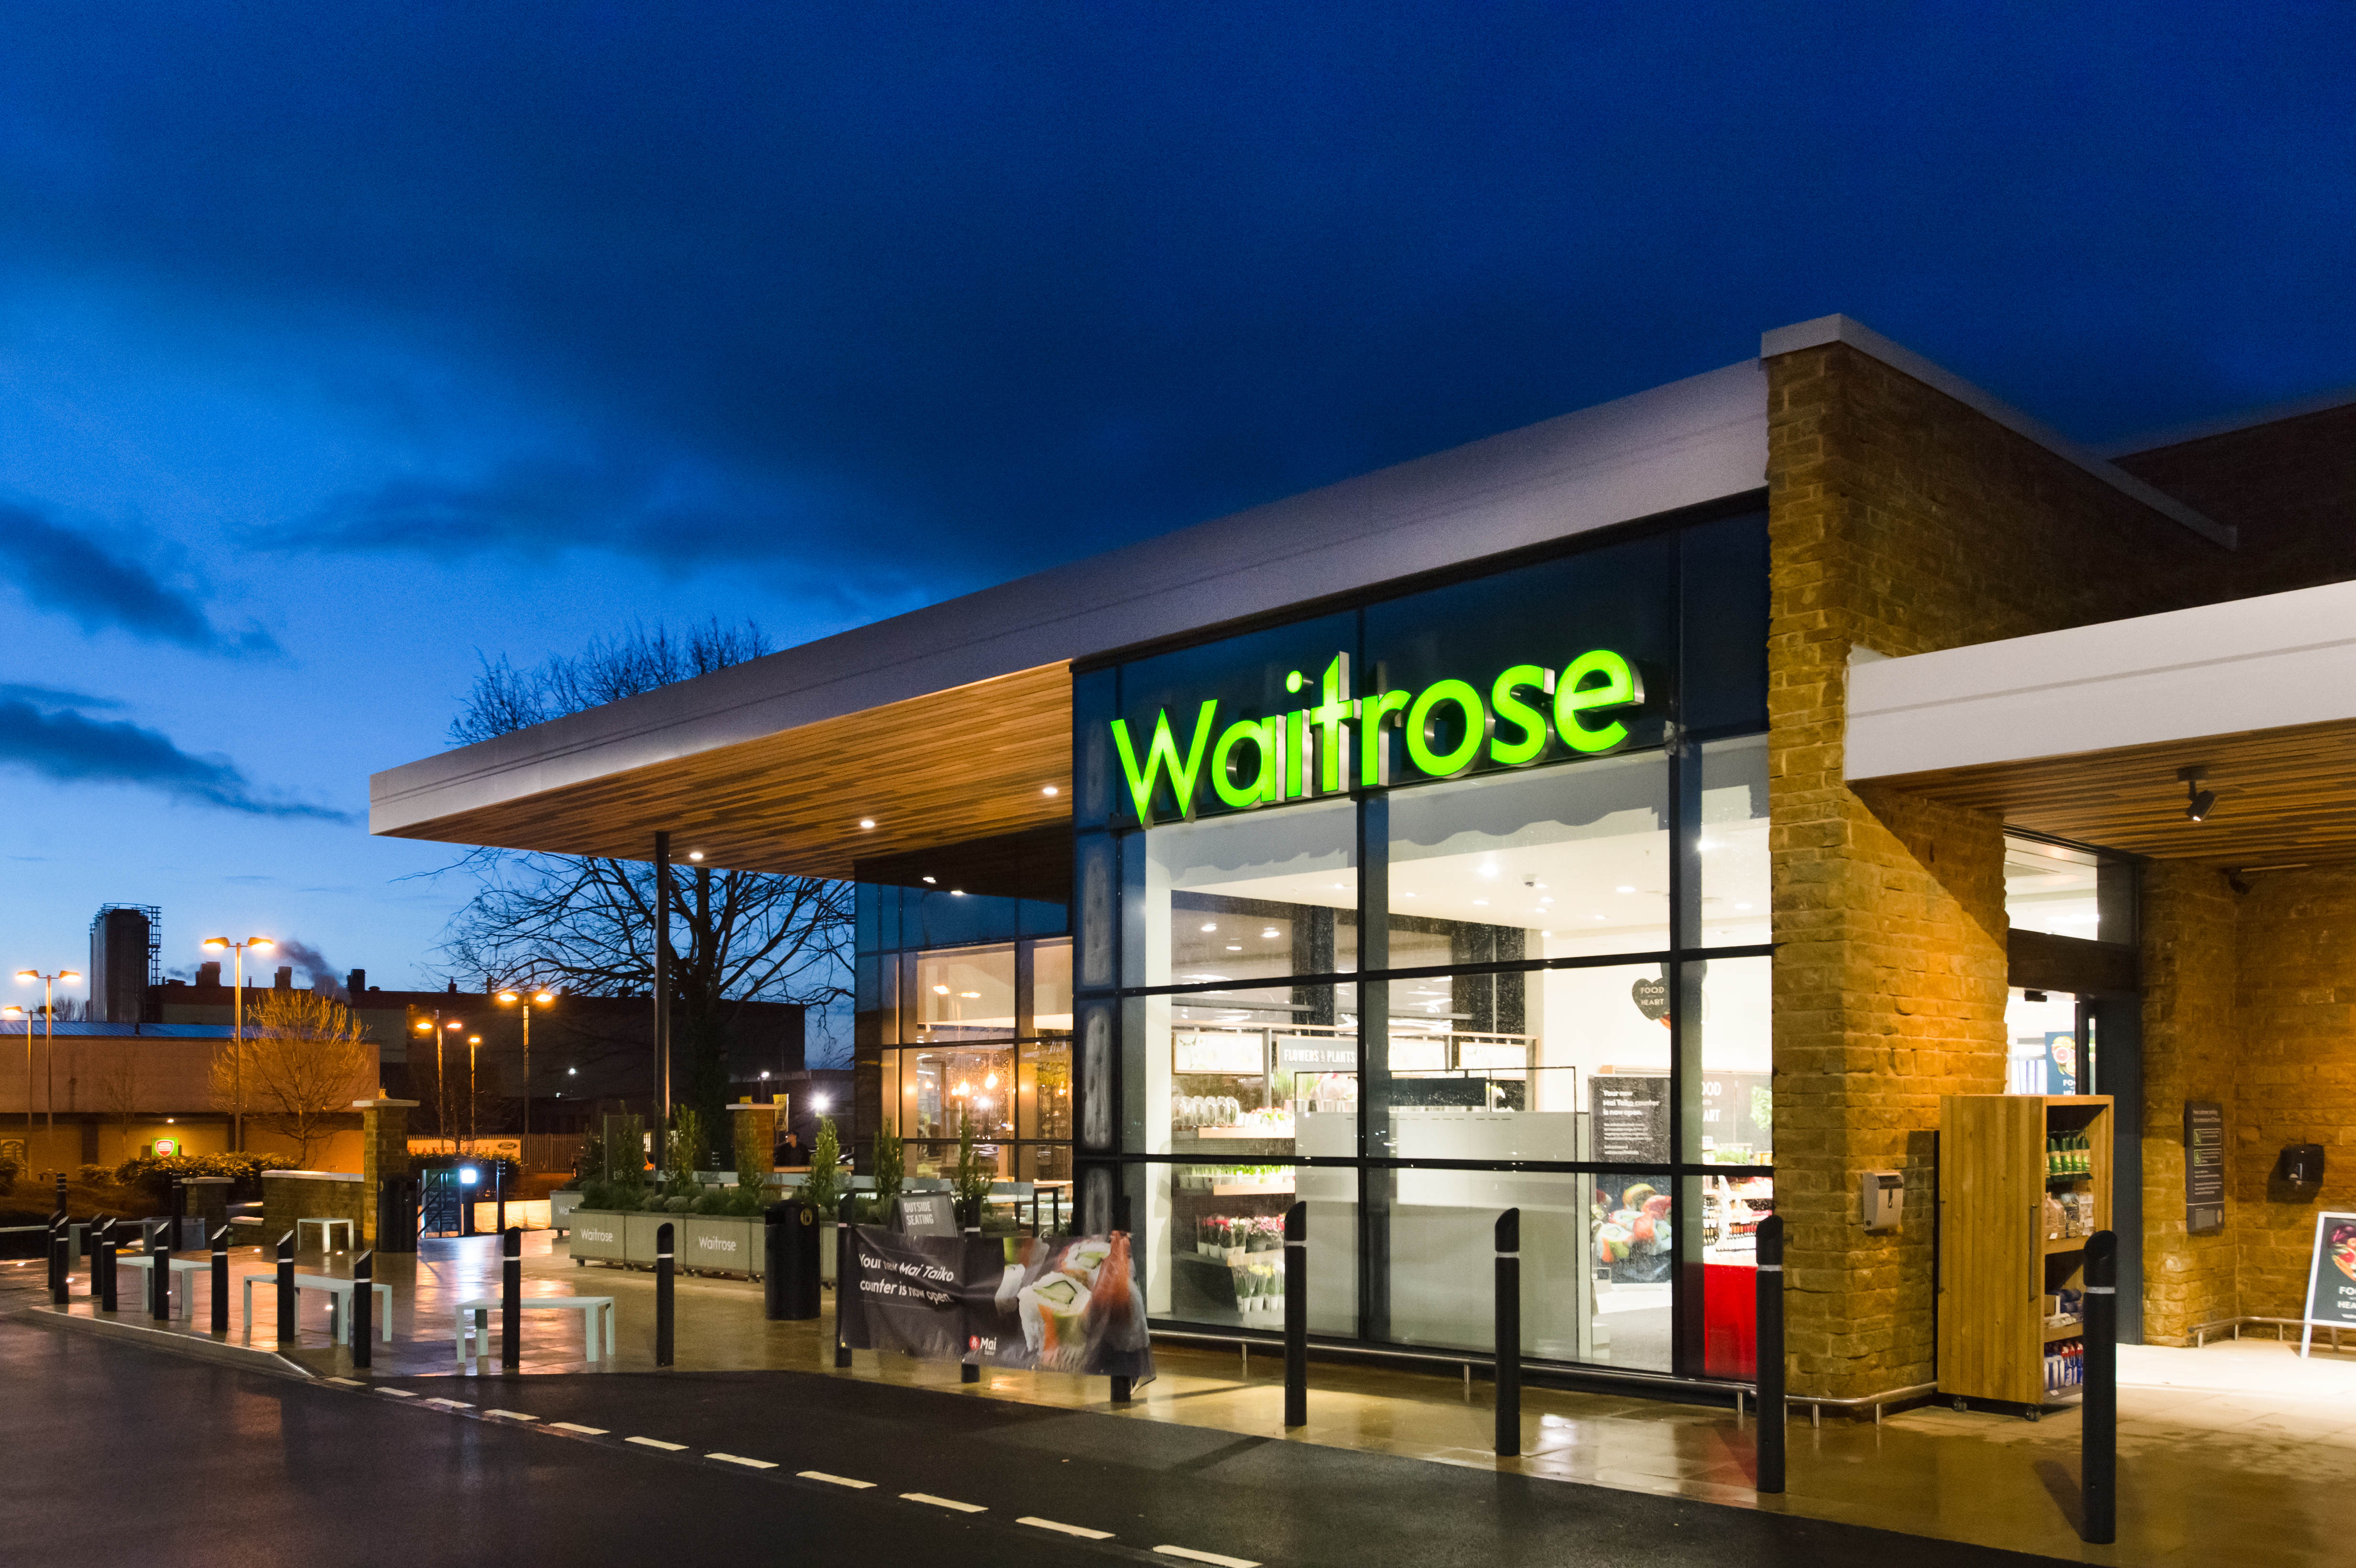 UK supermarket Waitrose